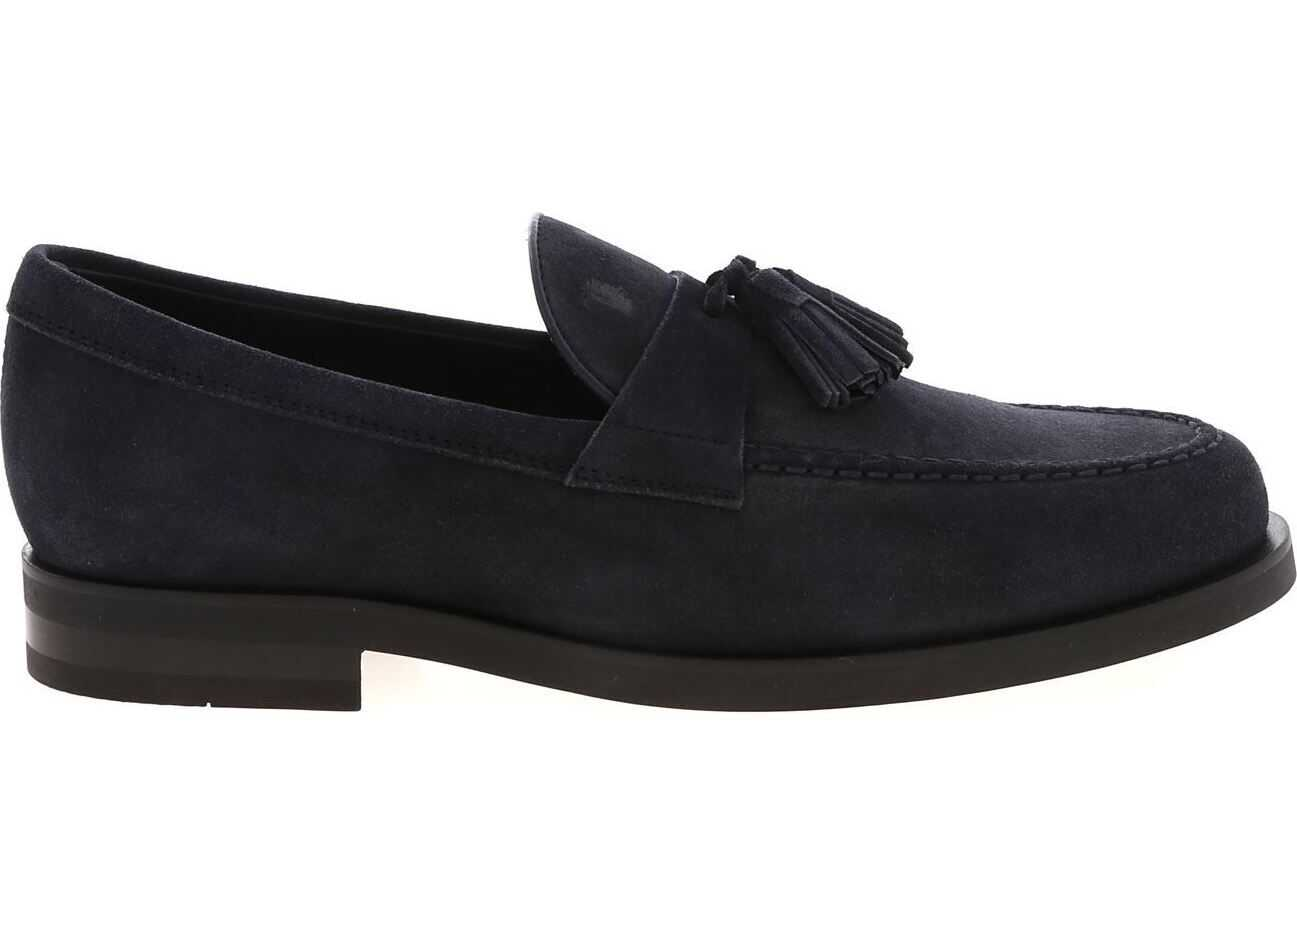 Loaferss In Blue Suede With Tassels thumbnail